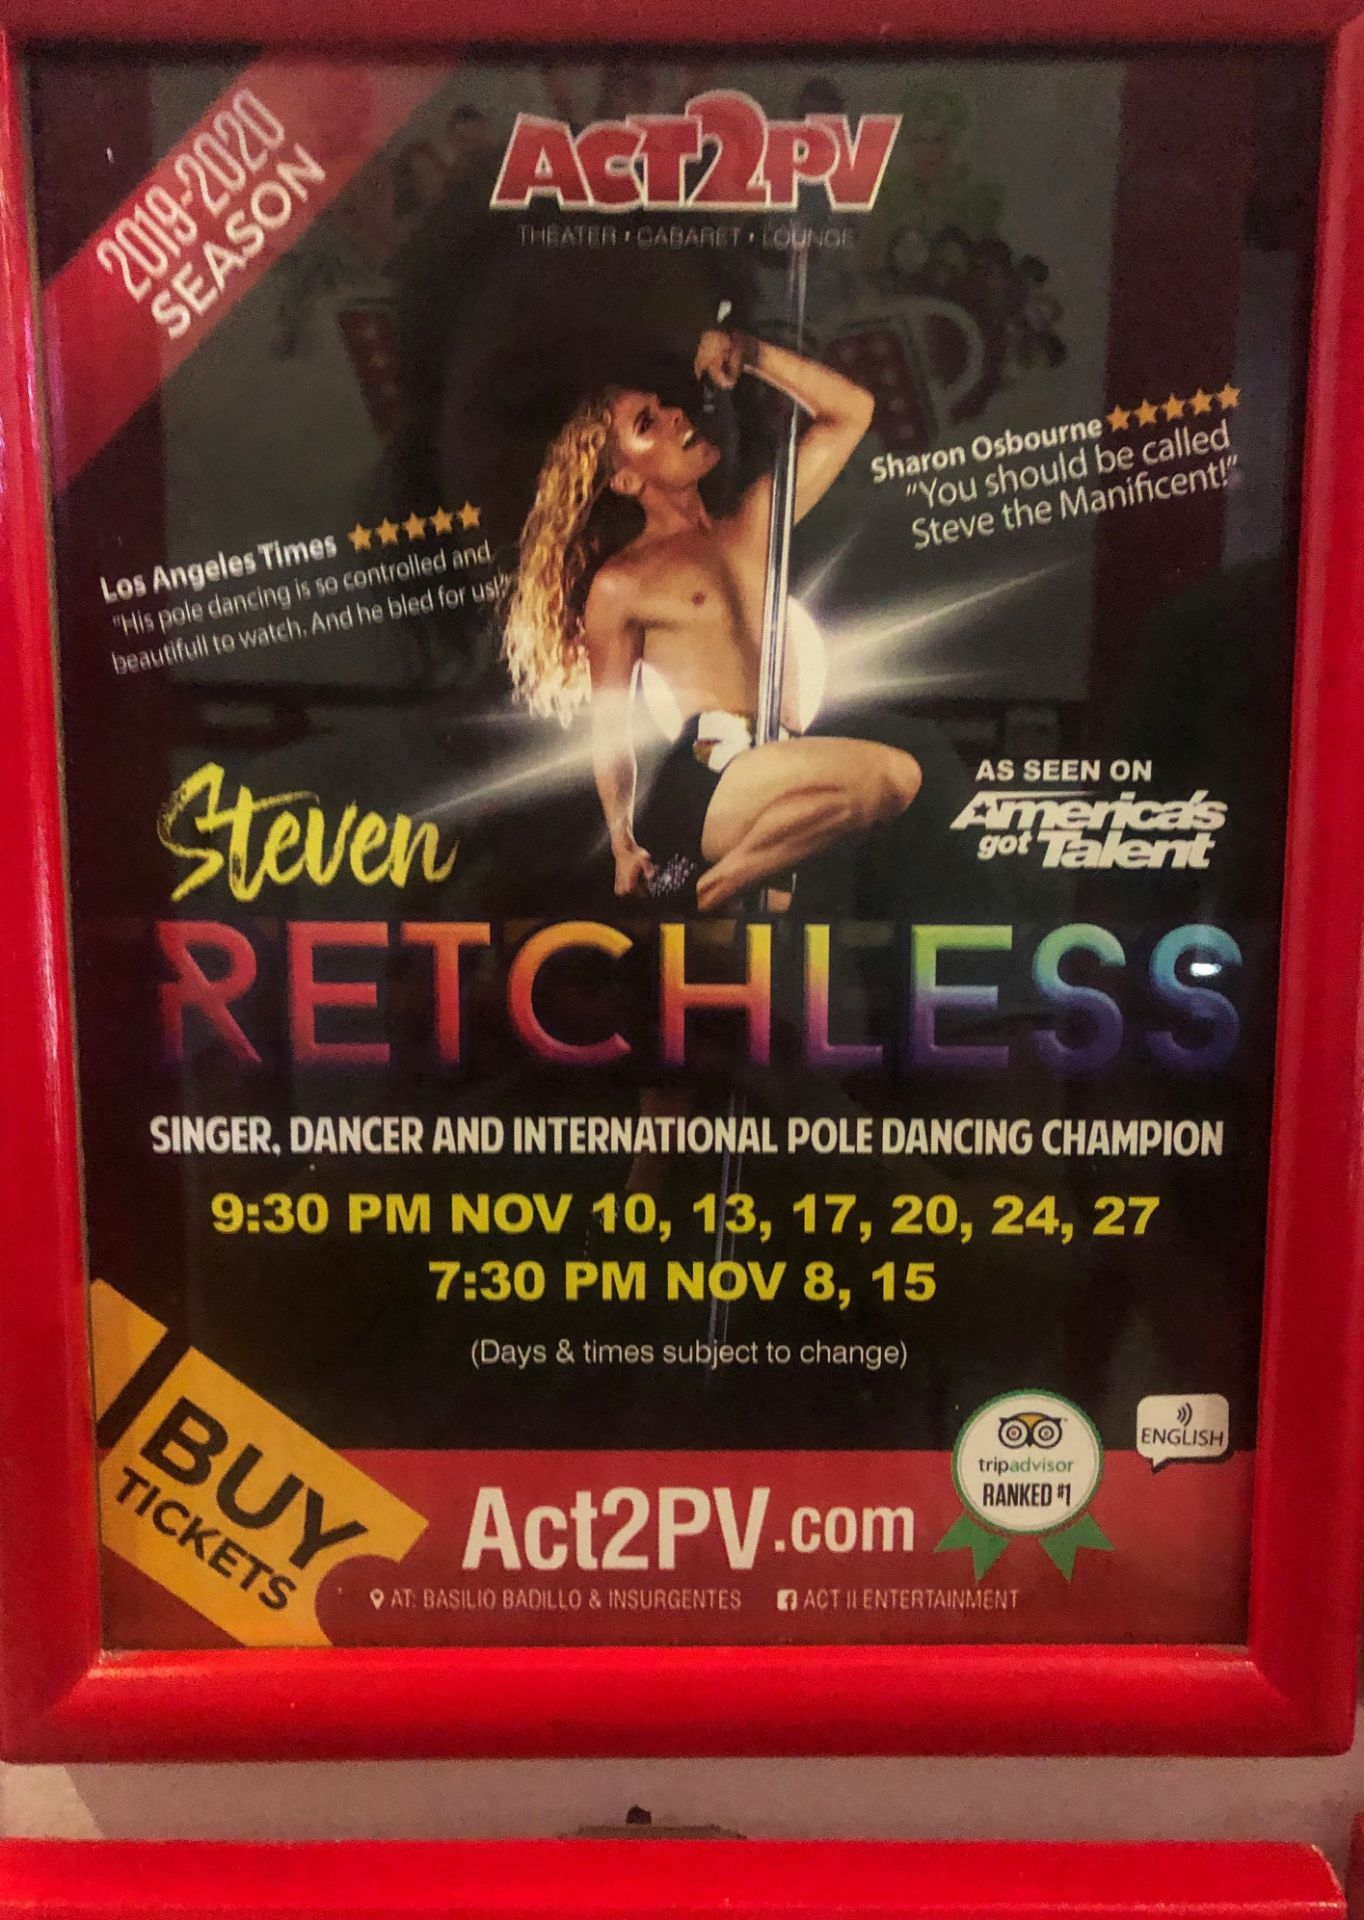 show poster for Steven Retchless at Act 2 PV